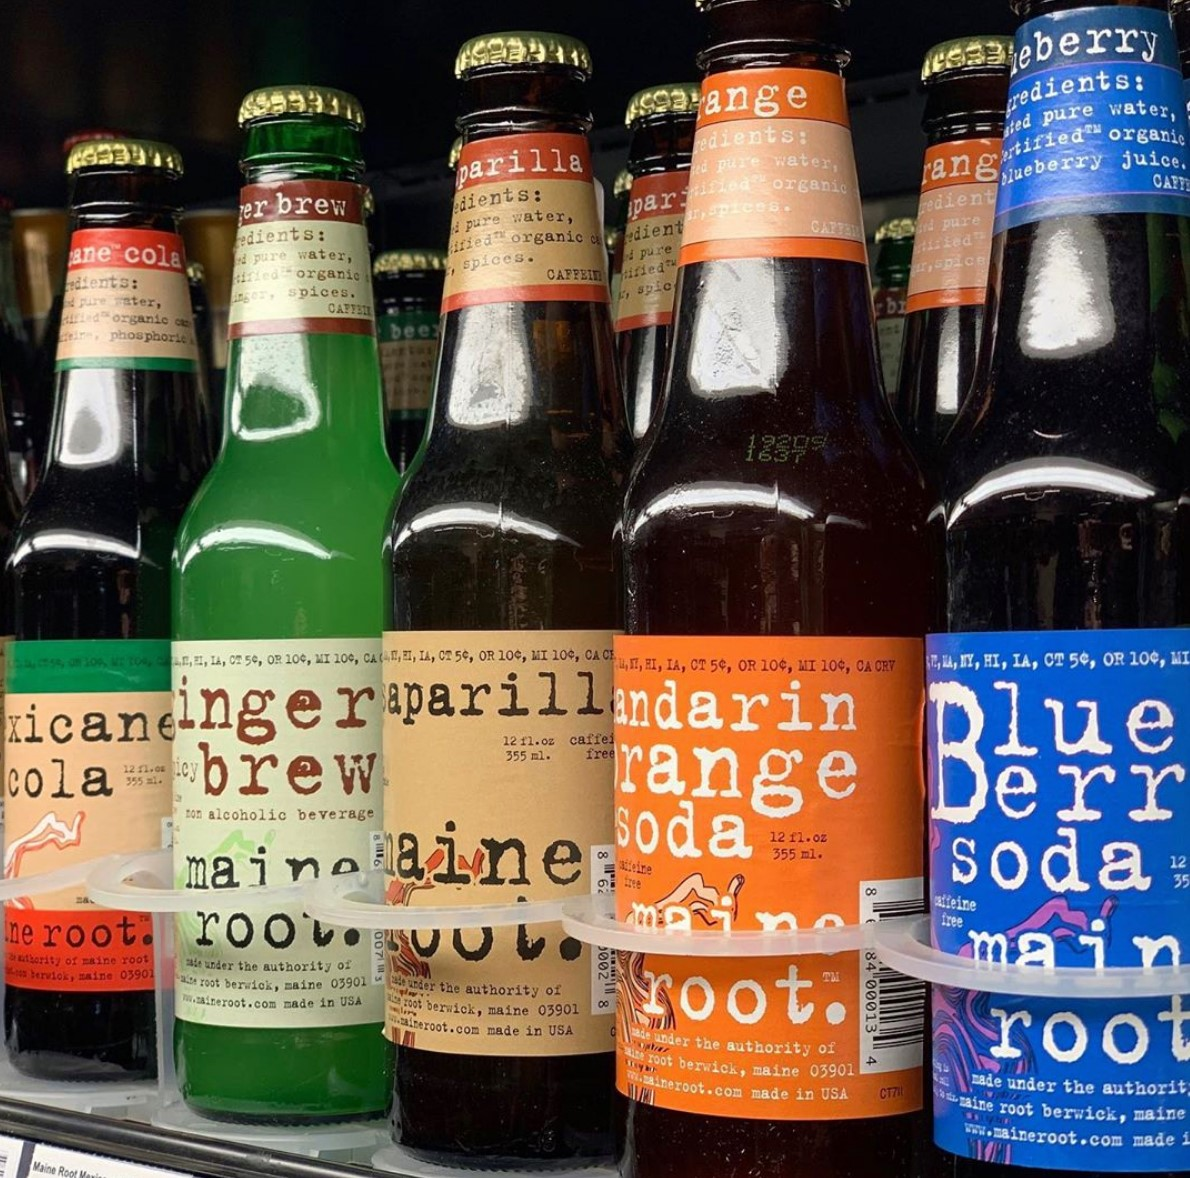 Maine Root's sodas use fair trade-certified organic sugar from Brazil